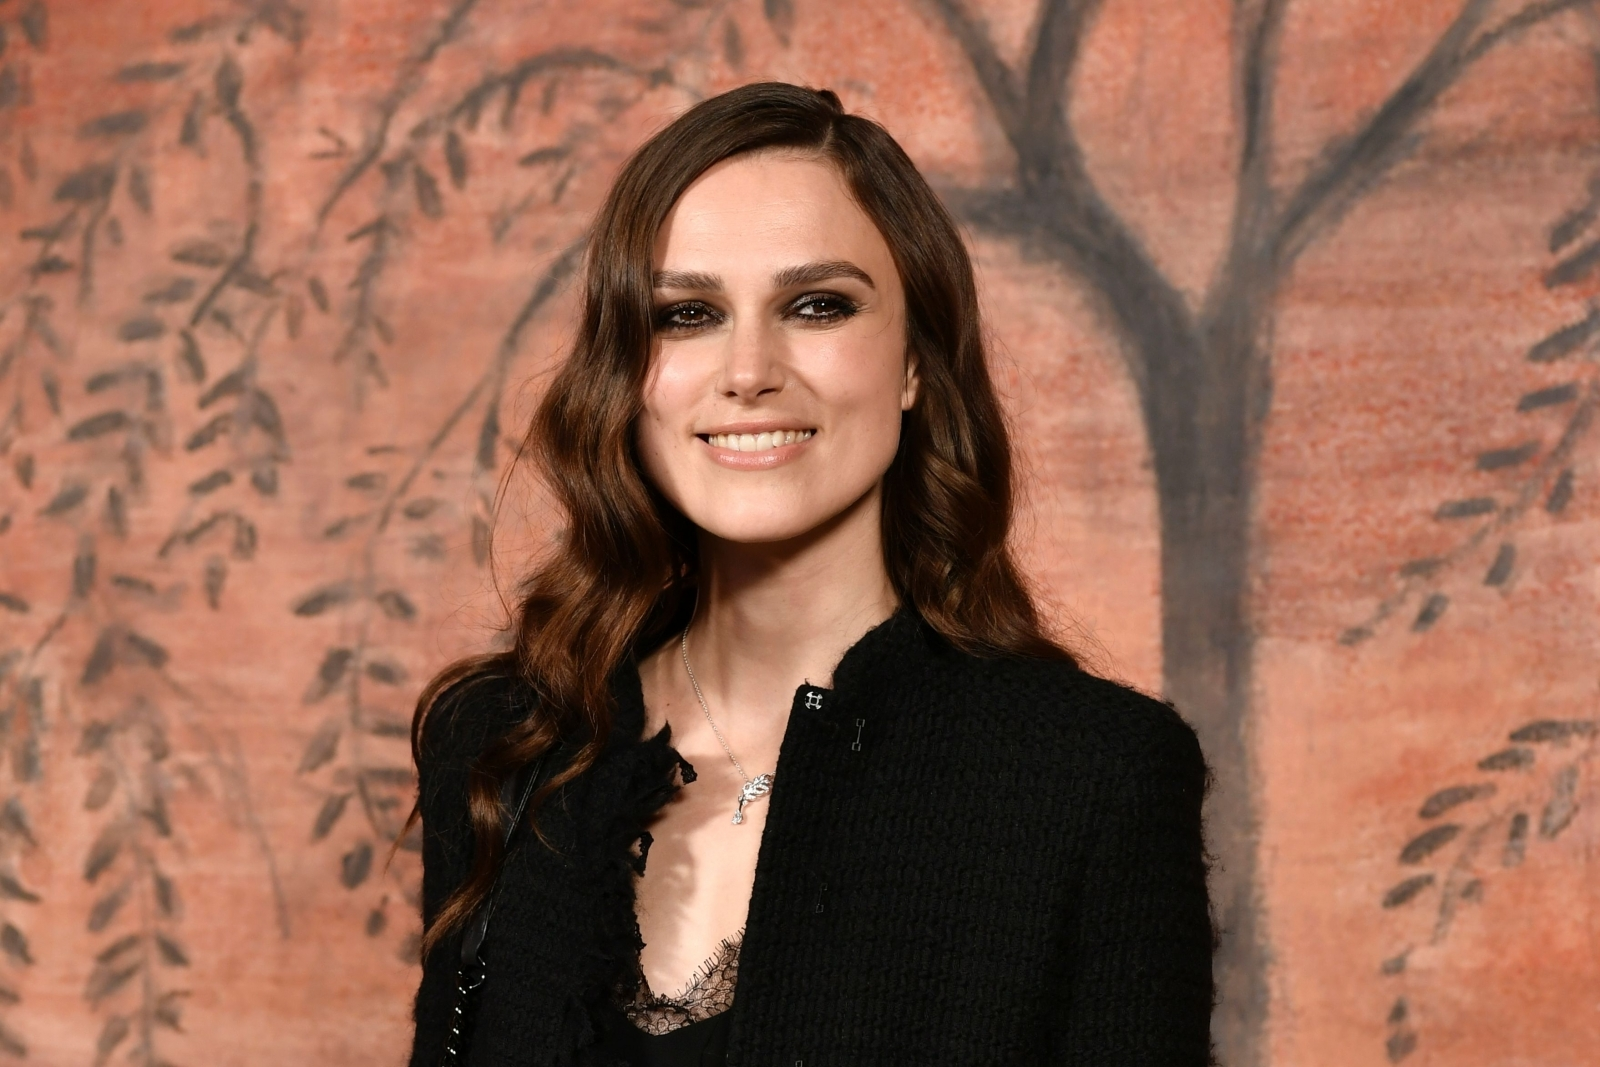 Modern day female characters almost always get raped: Keira Knightley